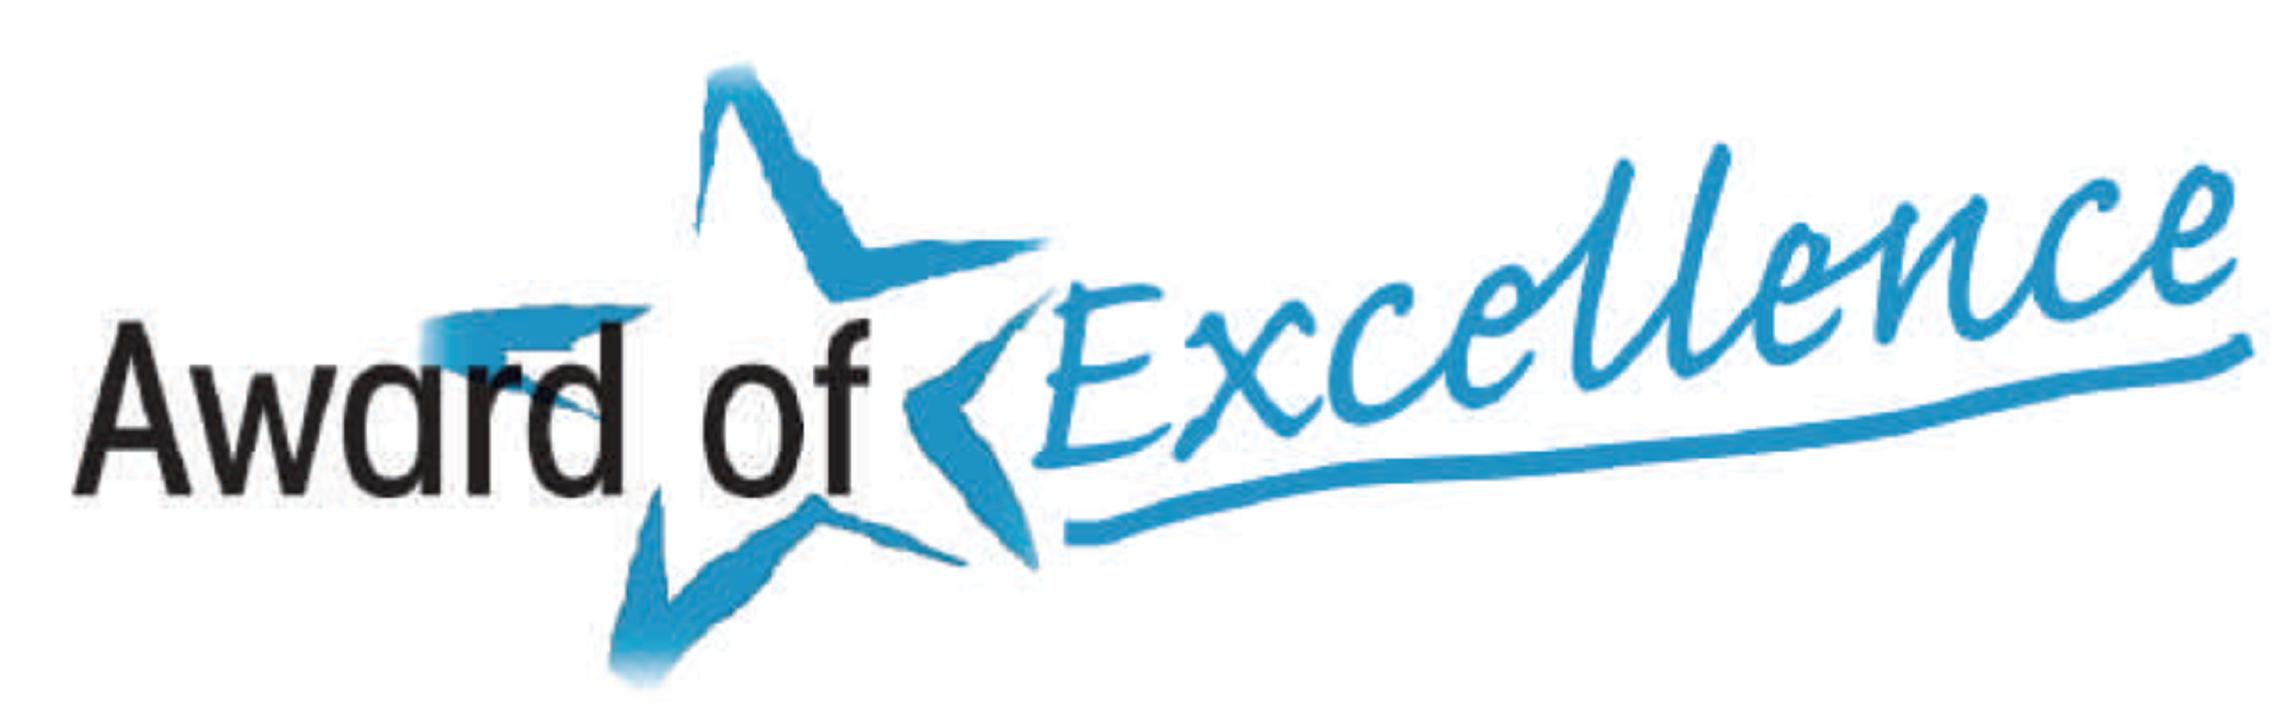 Award of Excellence logo